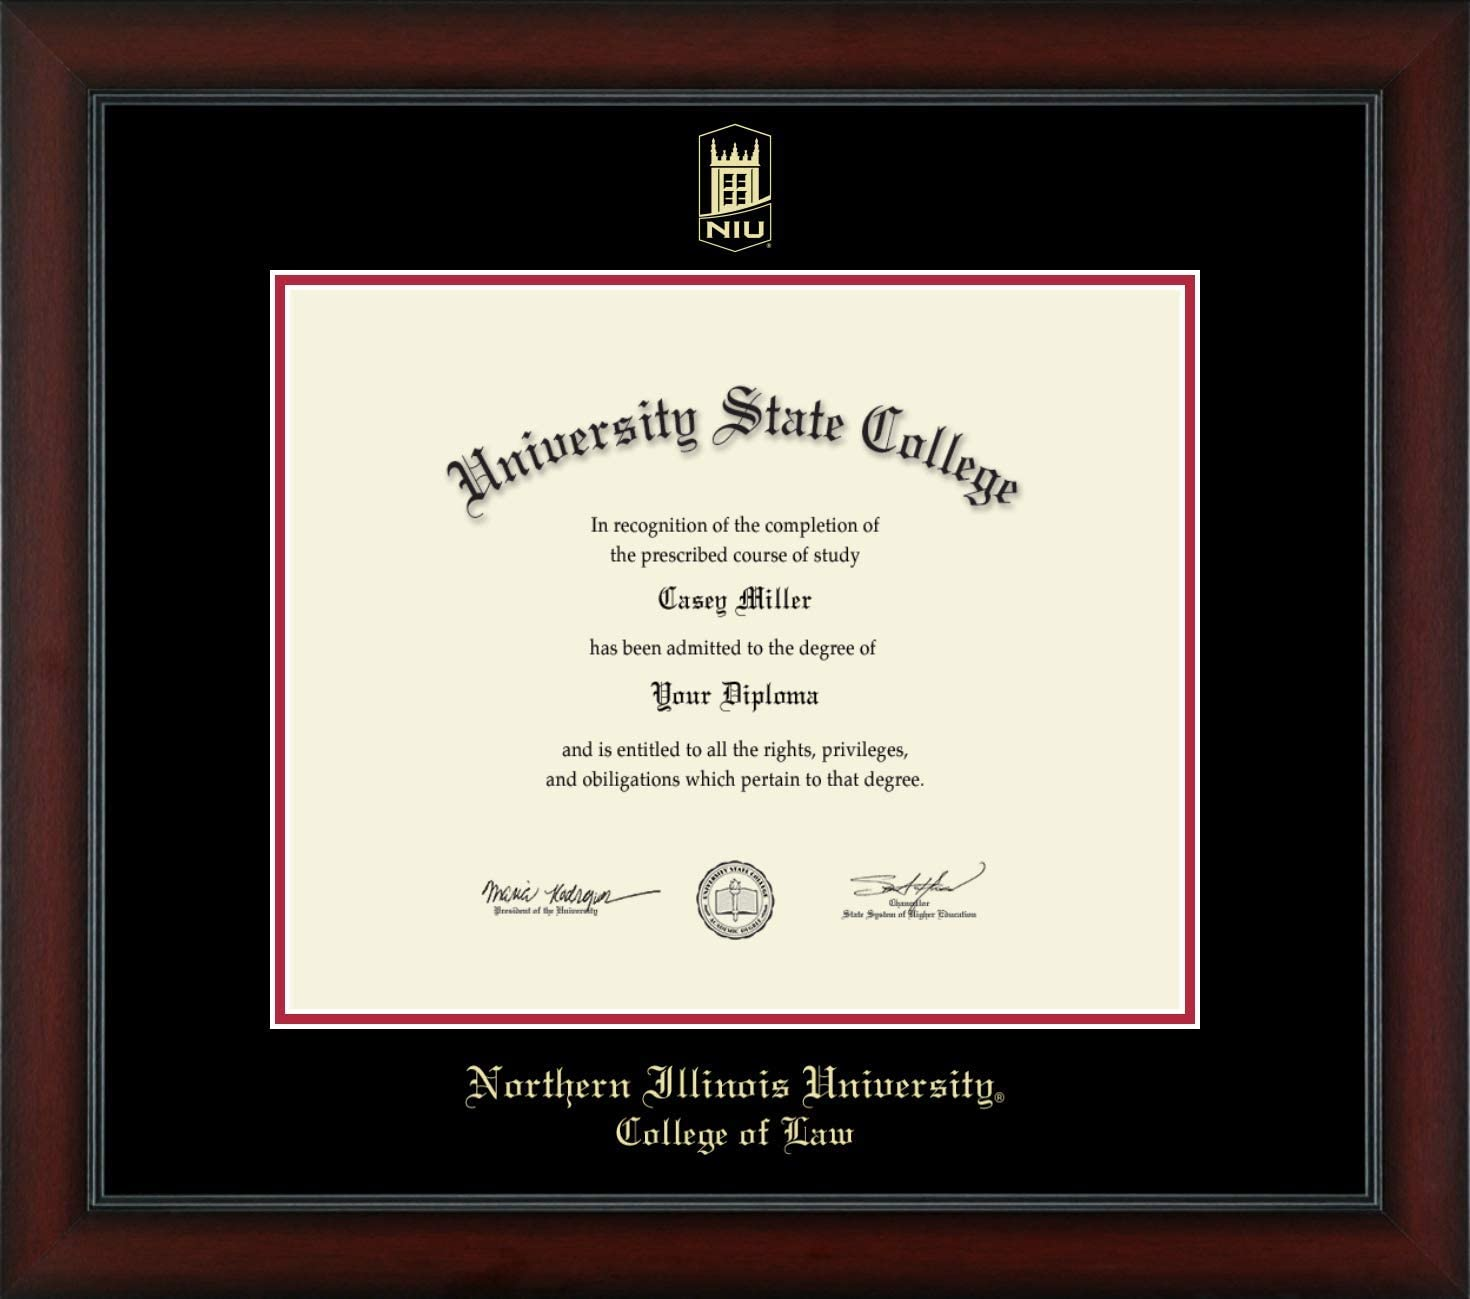 "Northern Illinois University College of Law - Officially Licensed - Gold Embossed Diploma Frame - Diploma Size 16"" x 13"""